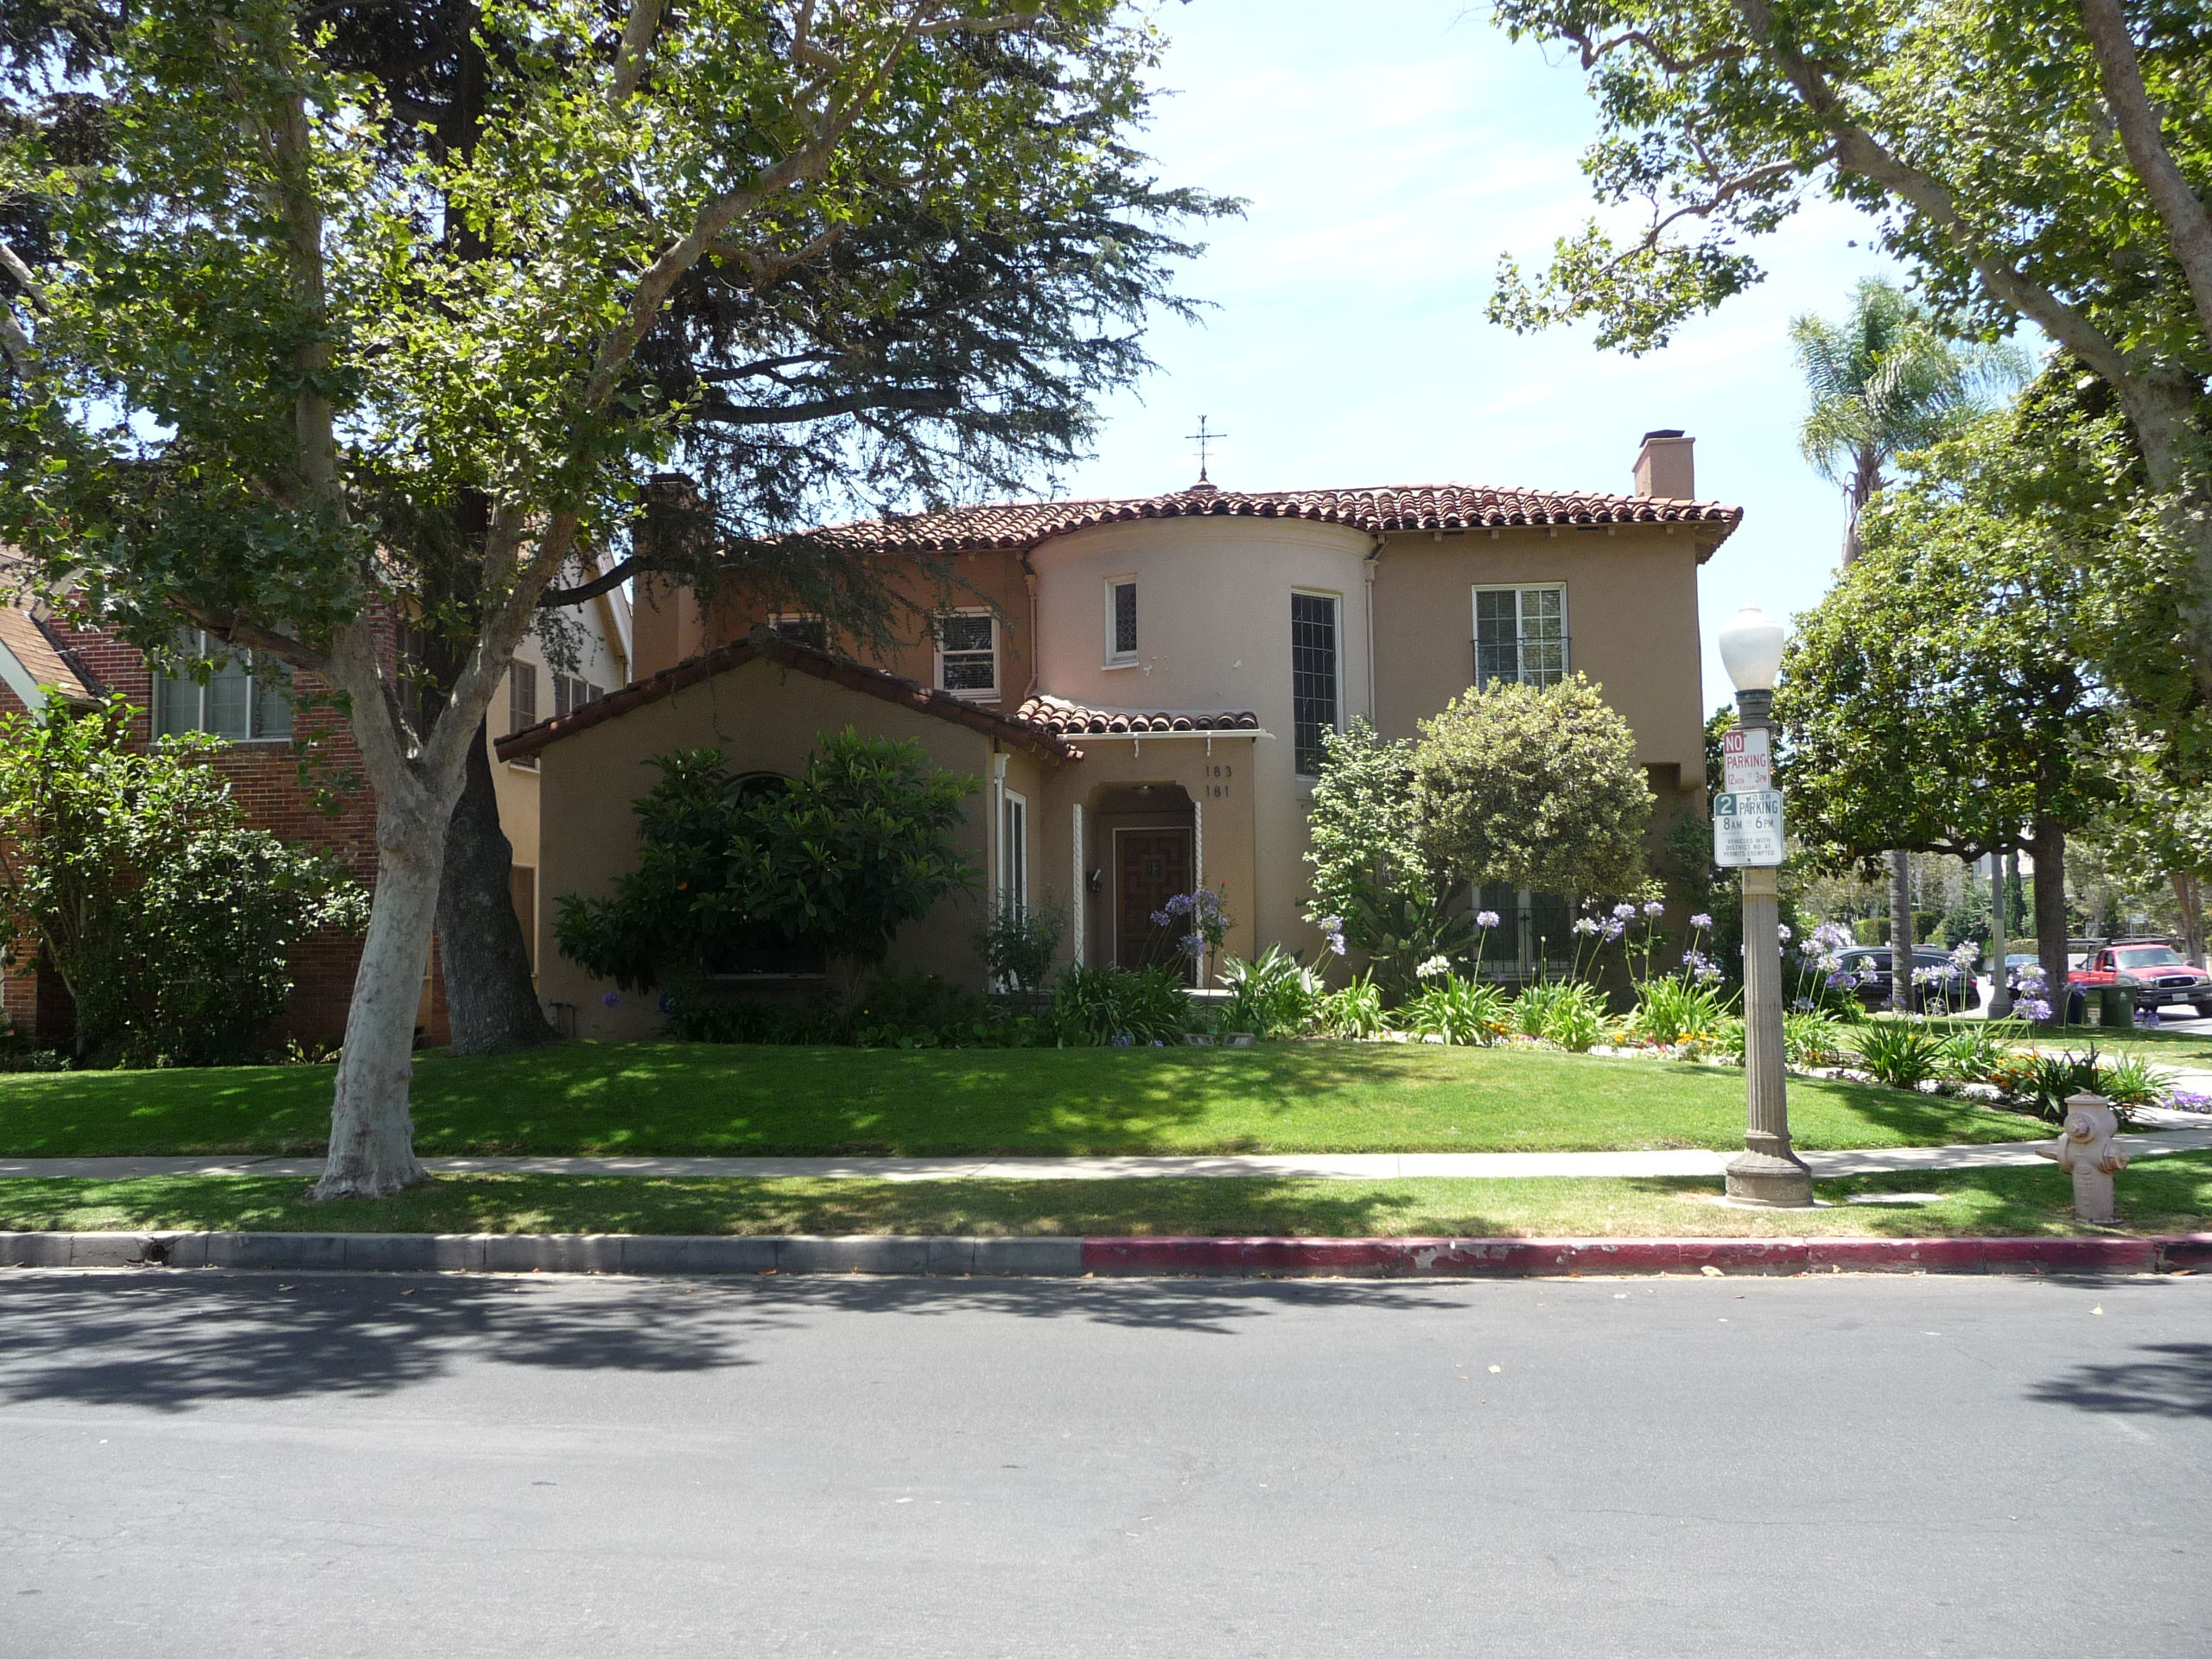 183 N MANSFIELD AVE - PHOTO